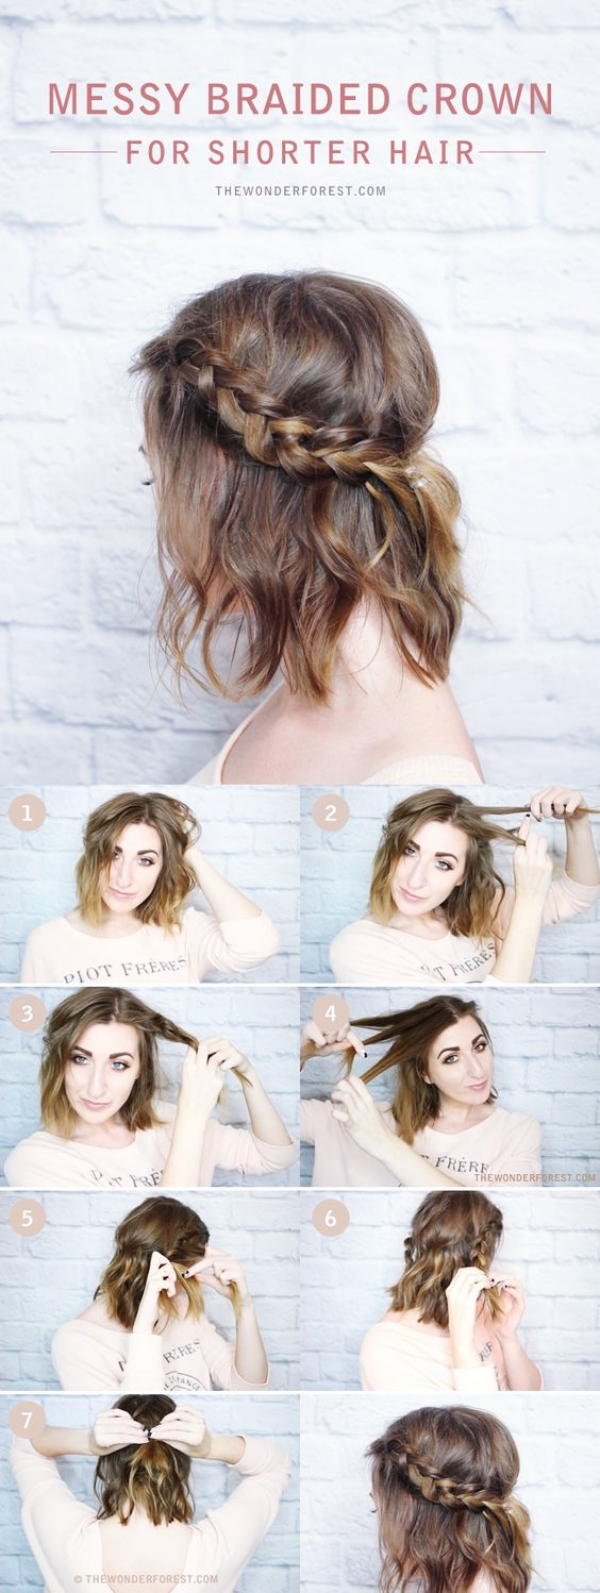 40 Easy Hairstyles No Haircuts For Women With Short Hair How To